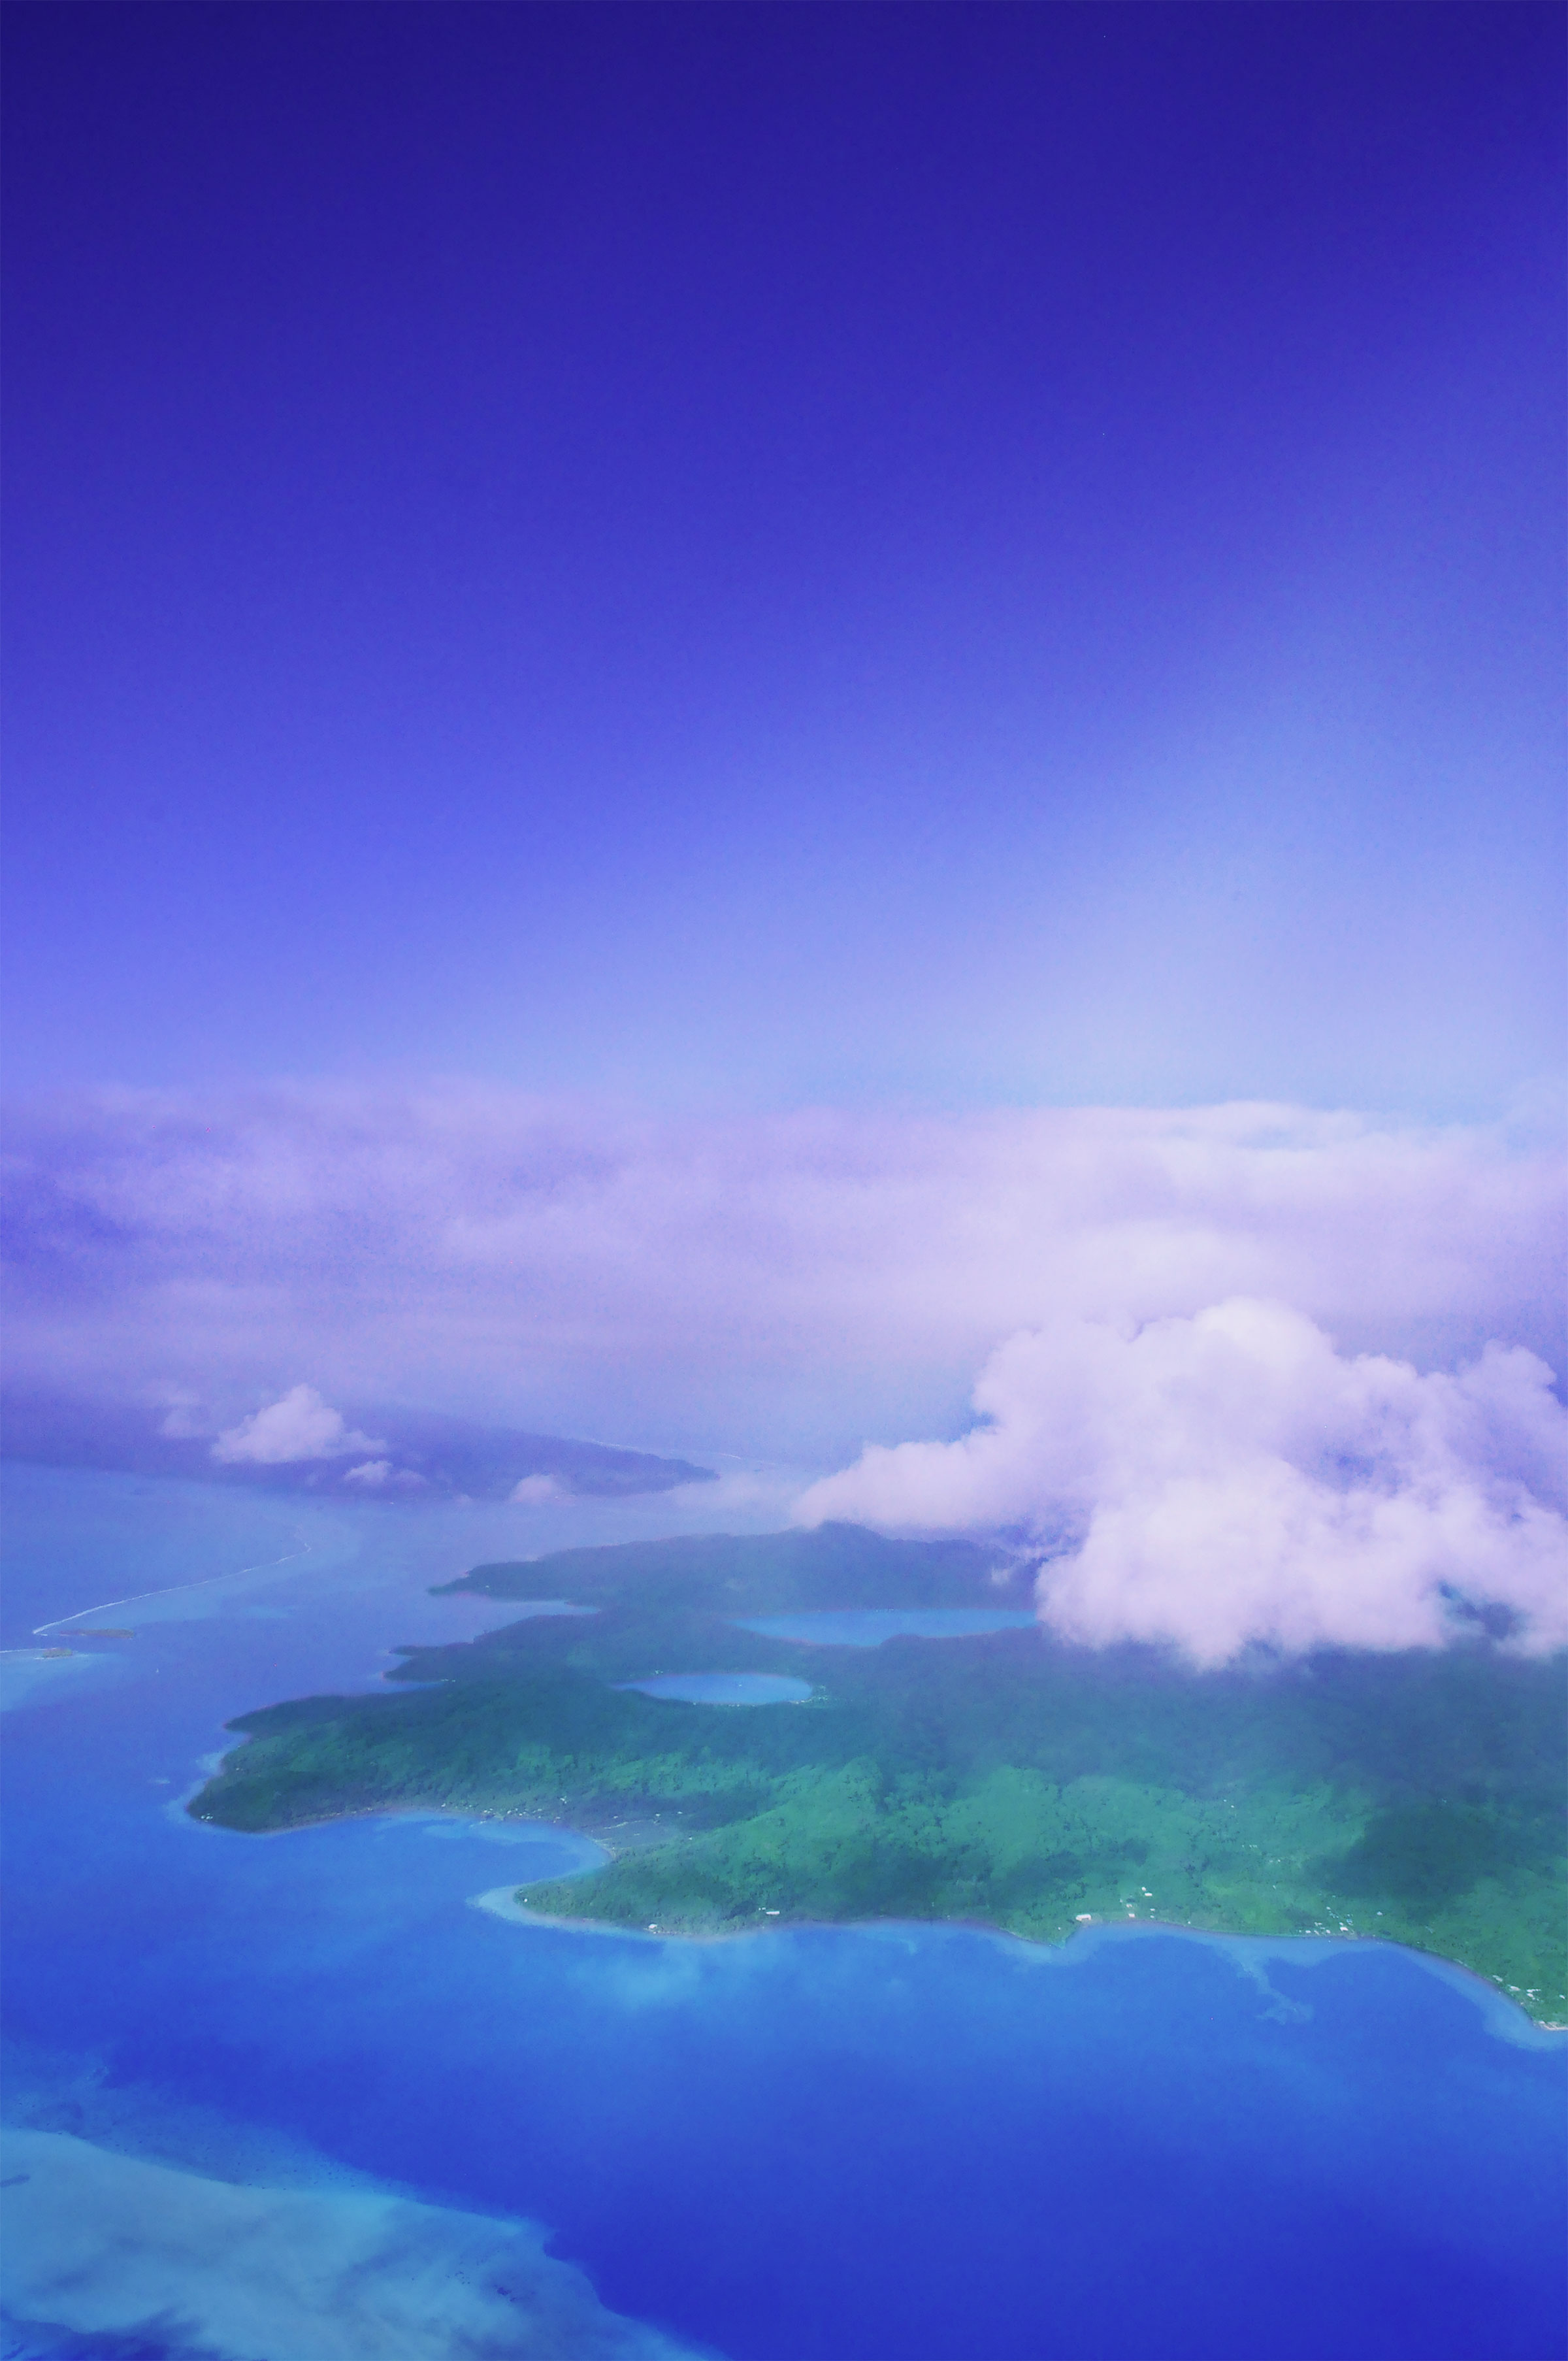 French Polynesia, Raiatea island and its blue bays Faaha and Haamene view from the sky, and the island of Tahaa just behind. (Nos Dren)